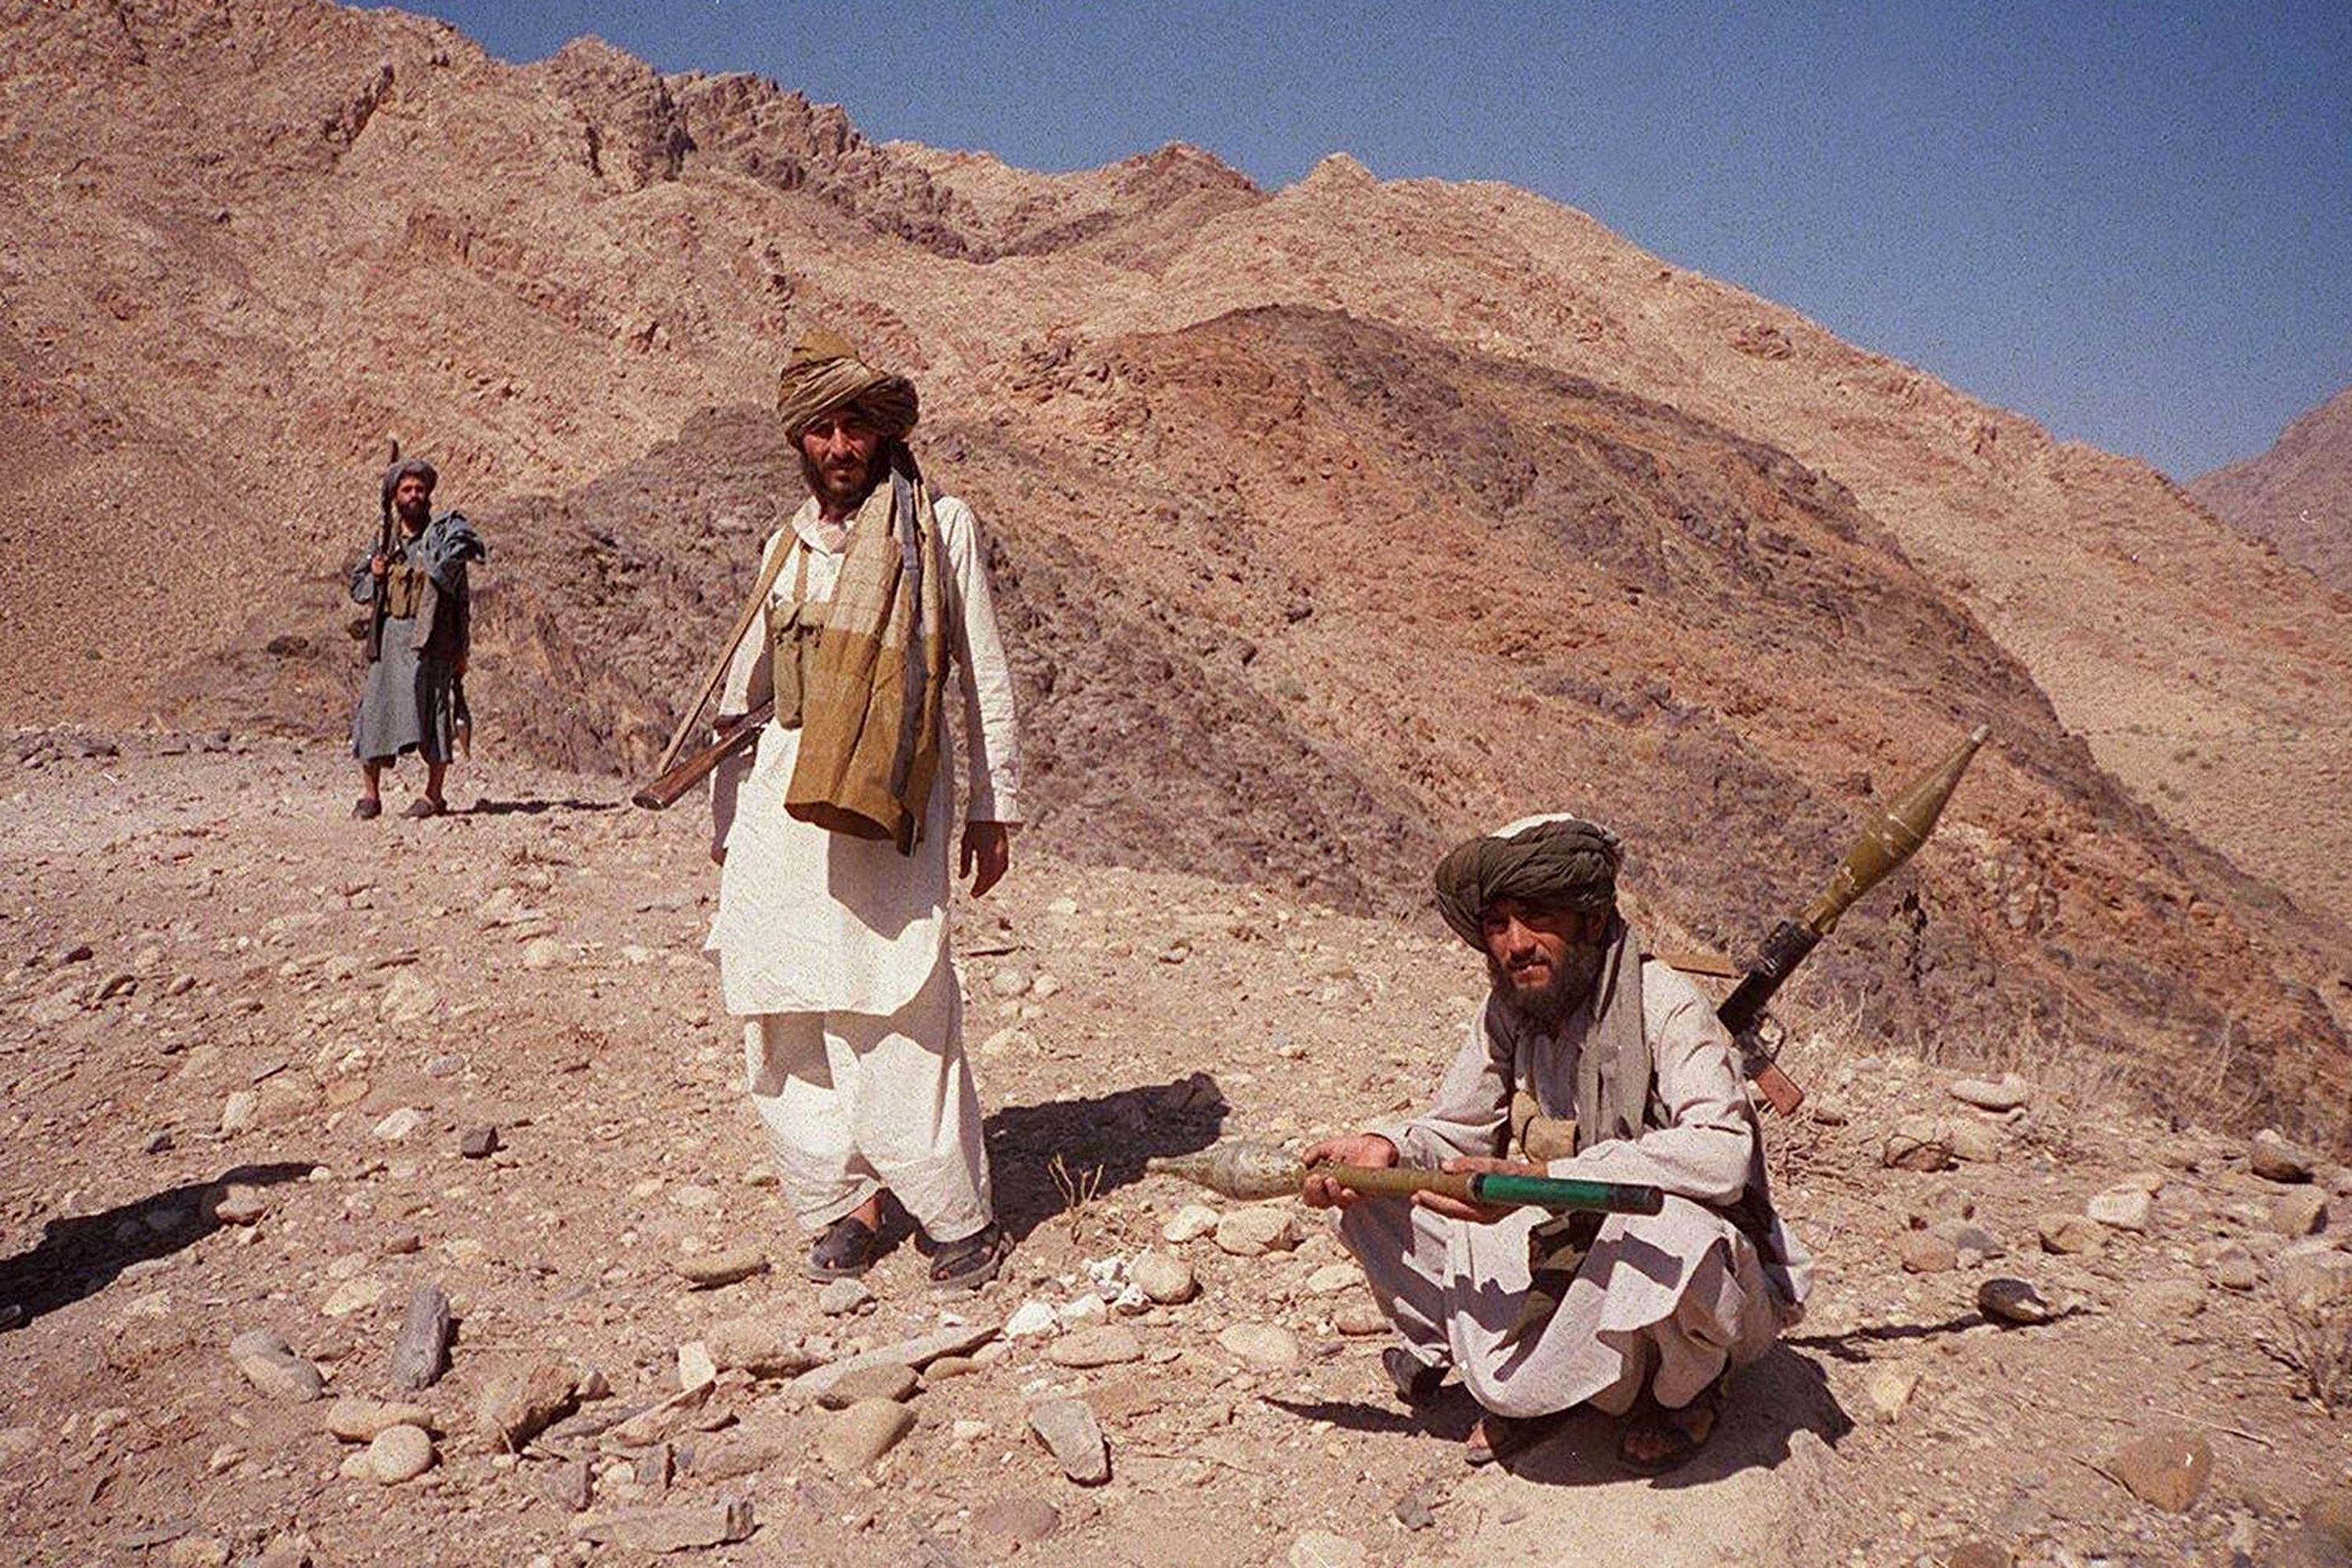 Taliban fighters posing on a hilltop near Jalalabad, Afghanistan on Oct. 14, 2001. (AFP Photo)